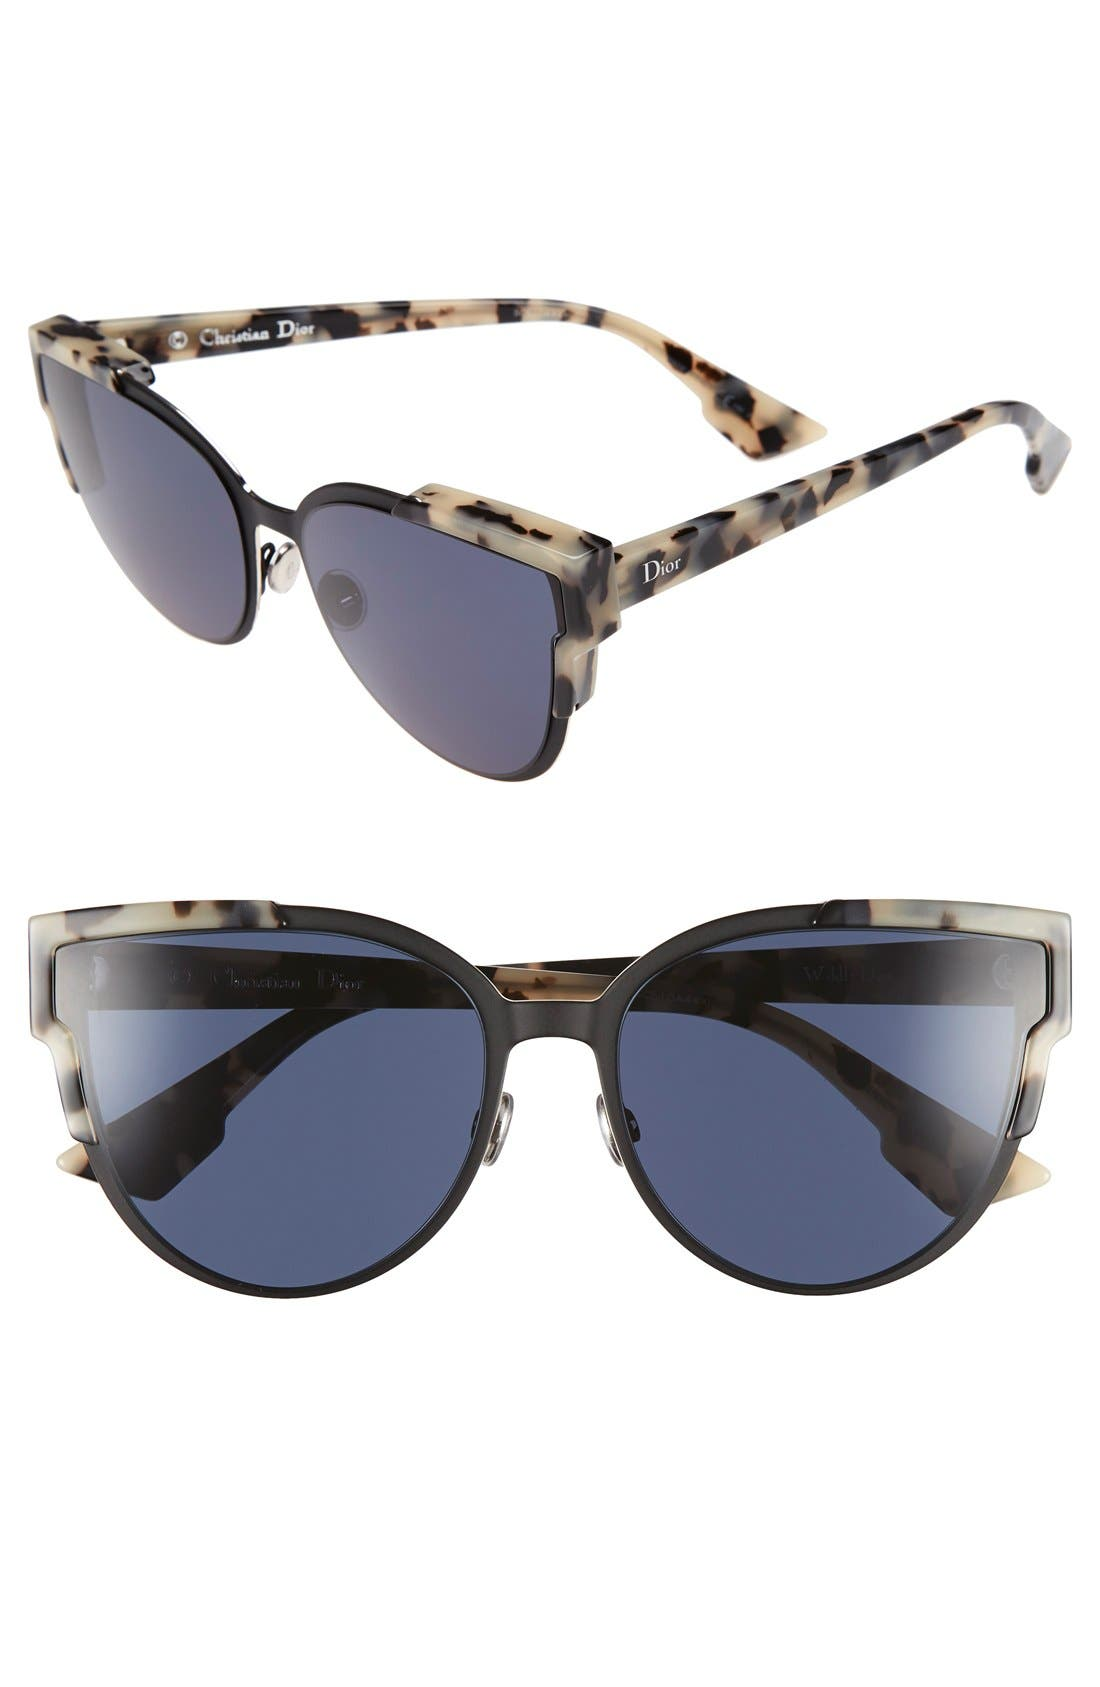 Wildly Dior 60mm Cat Eye Sunglasses,                             Main thumbnail 1, color,                             200